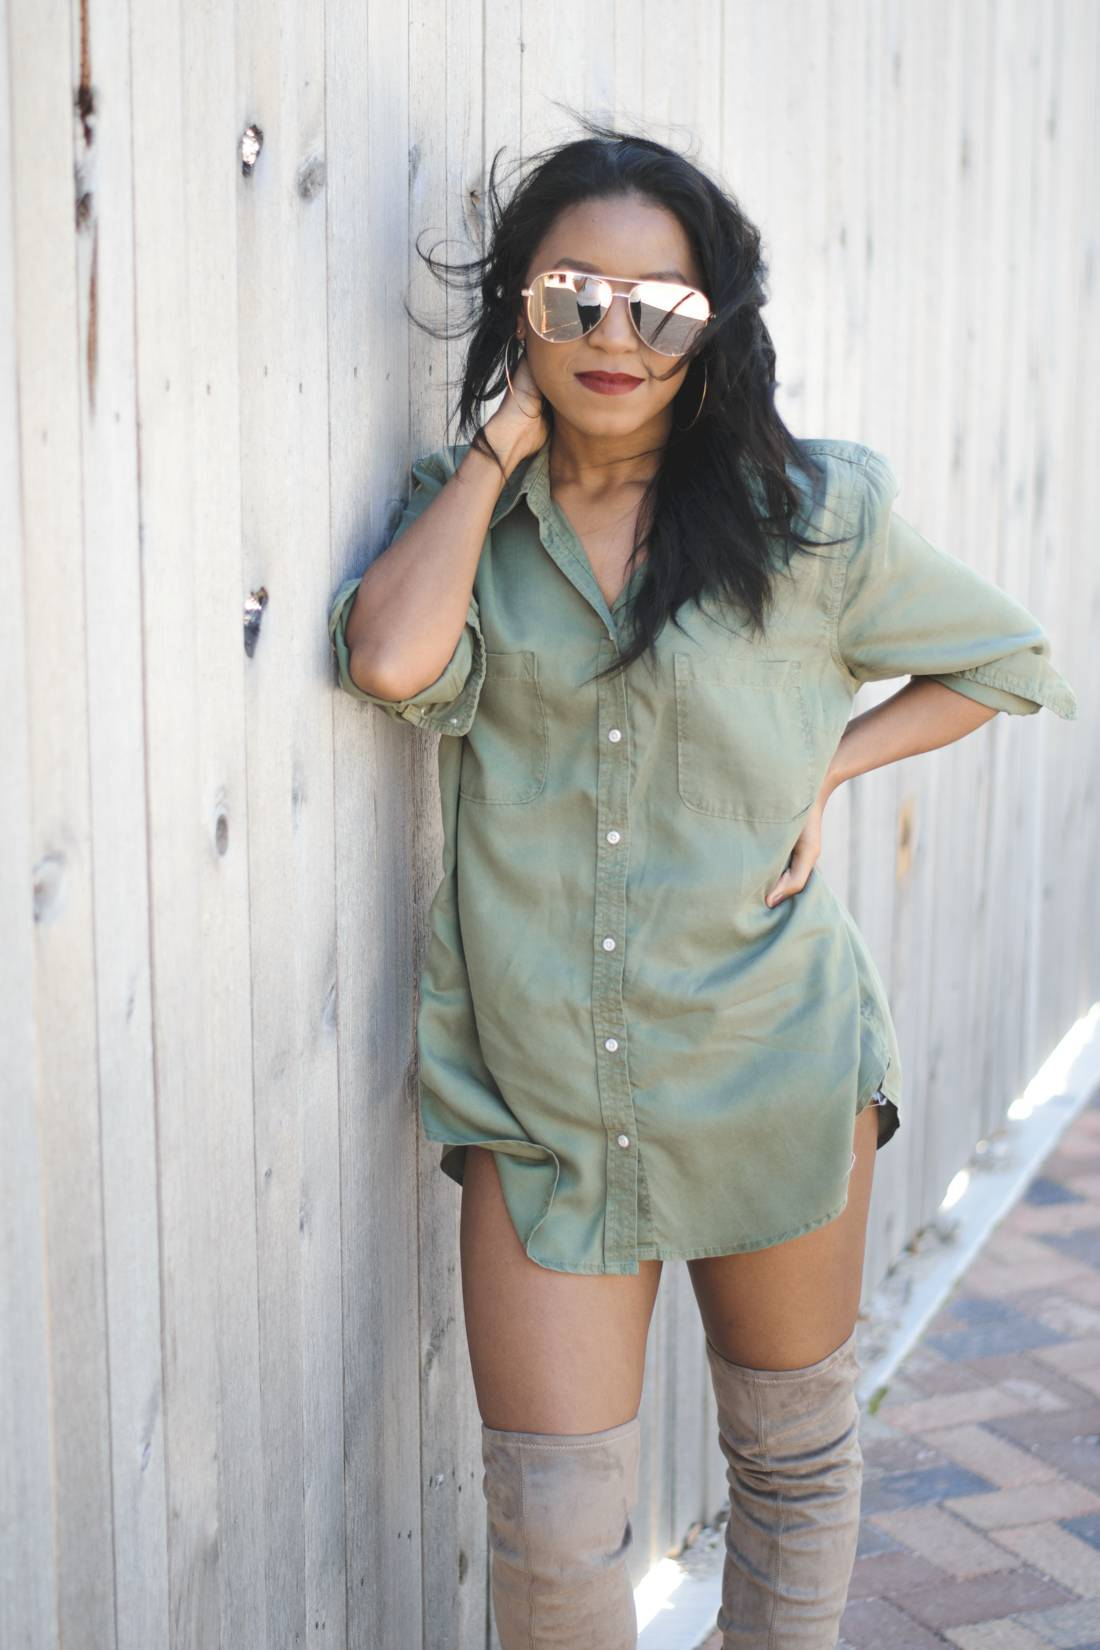 Nude Thigh High Boots And Oversized Shirt 4 Venti Fashion